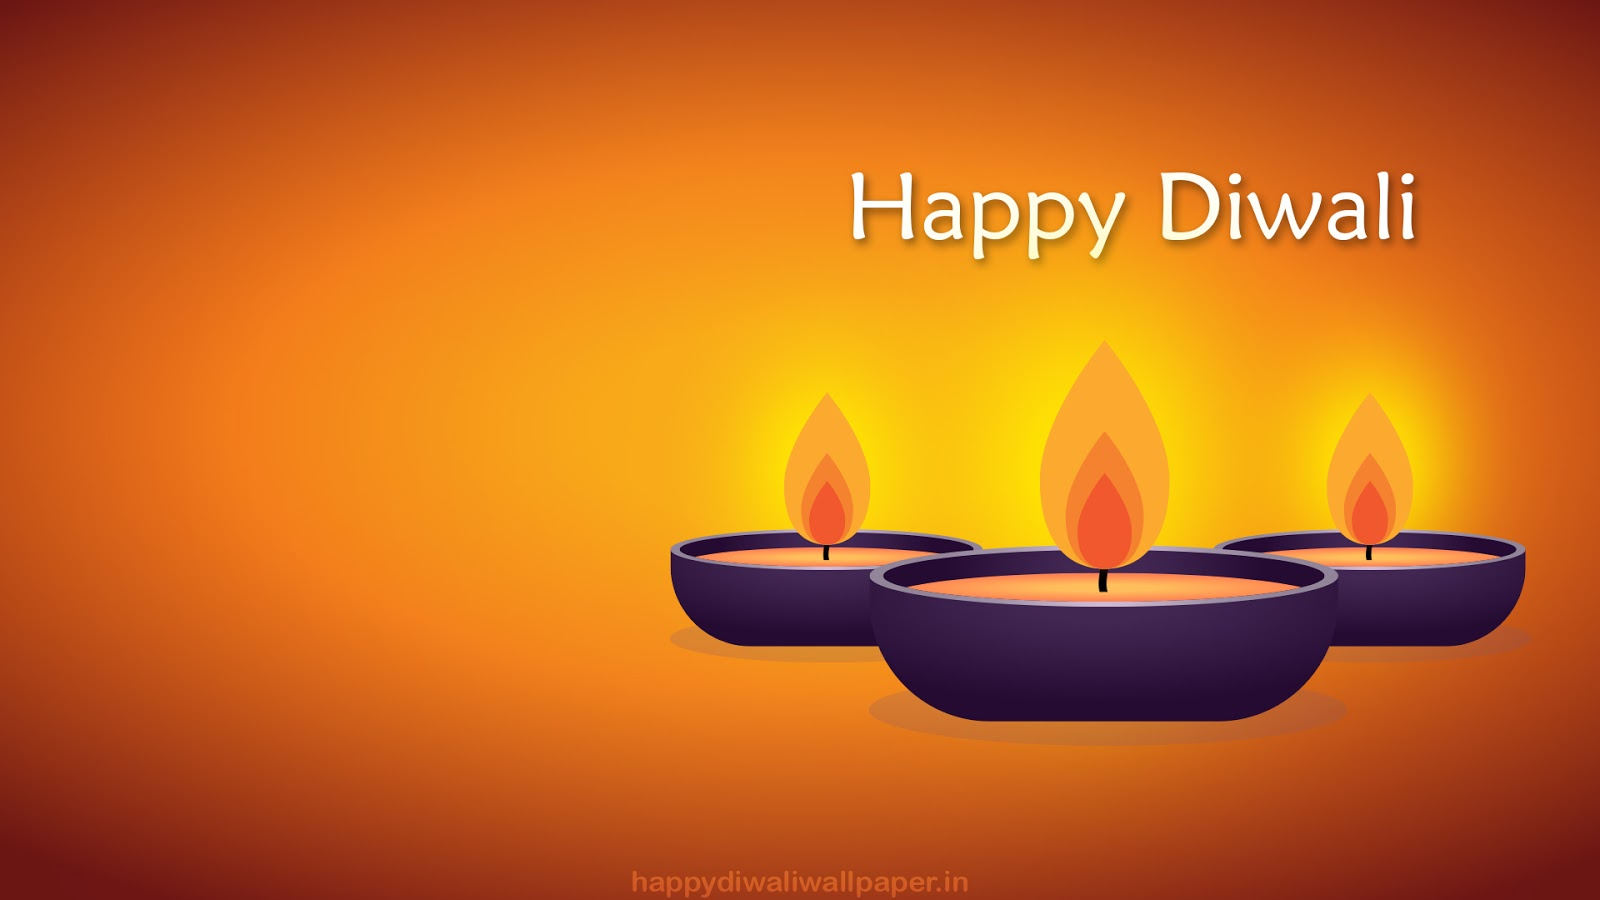 Happy Diwali Images, GIF, Animation, Wallpapers, HD Pics